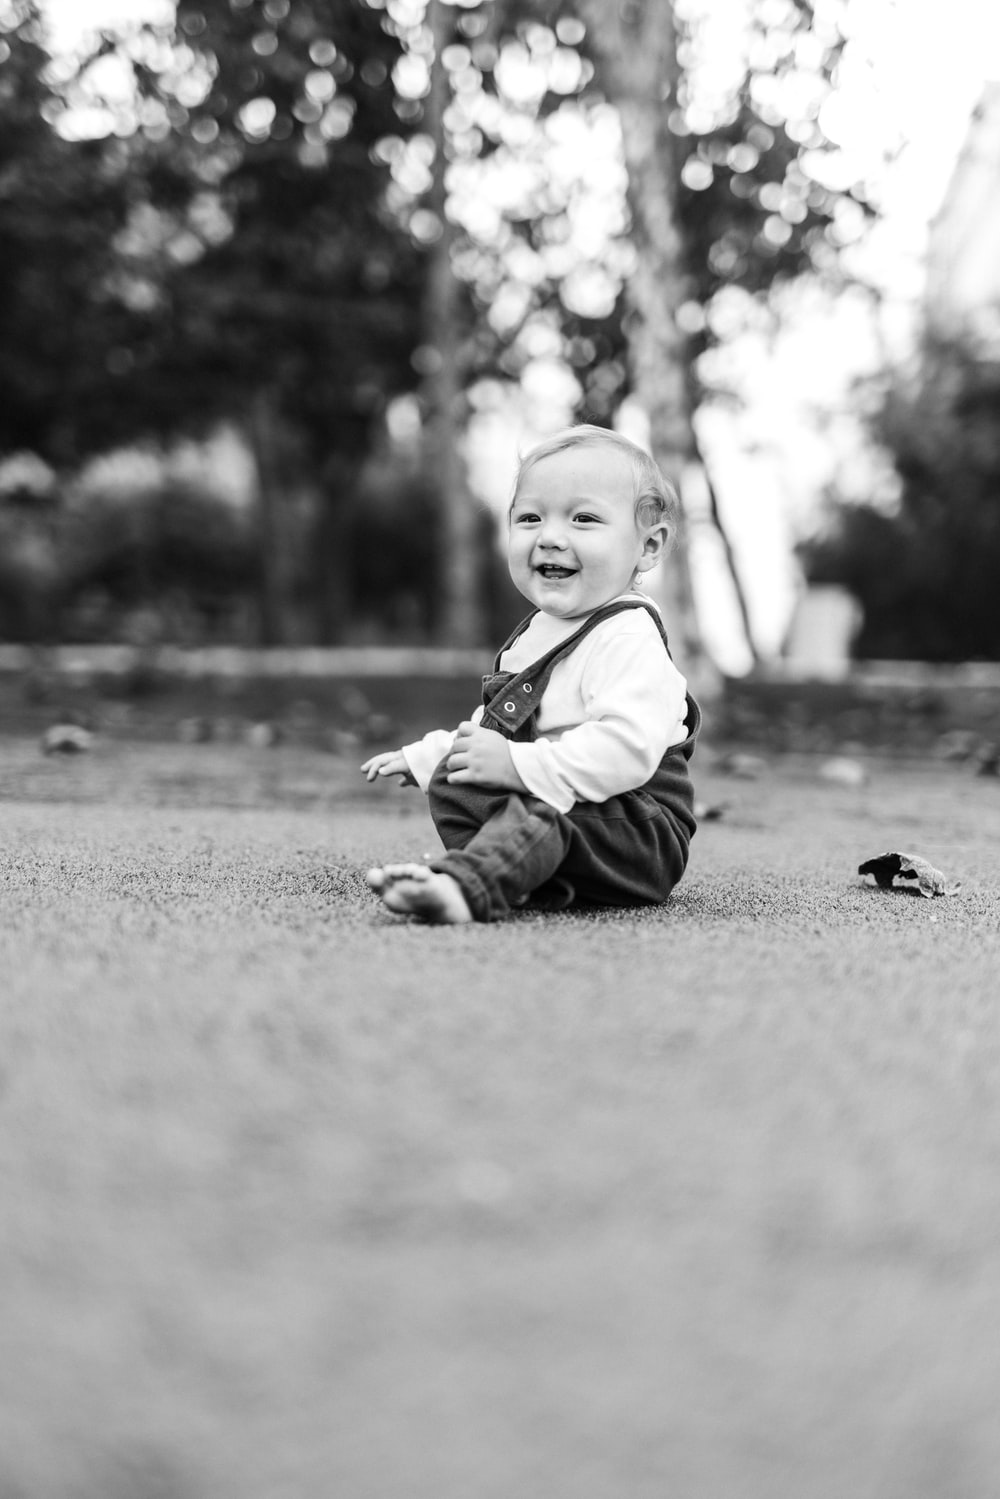 grayscale photo of child sitting on ground